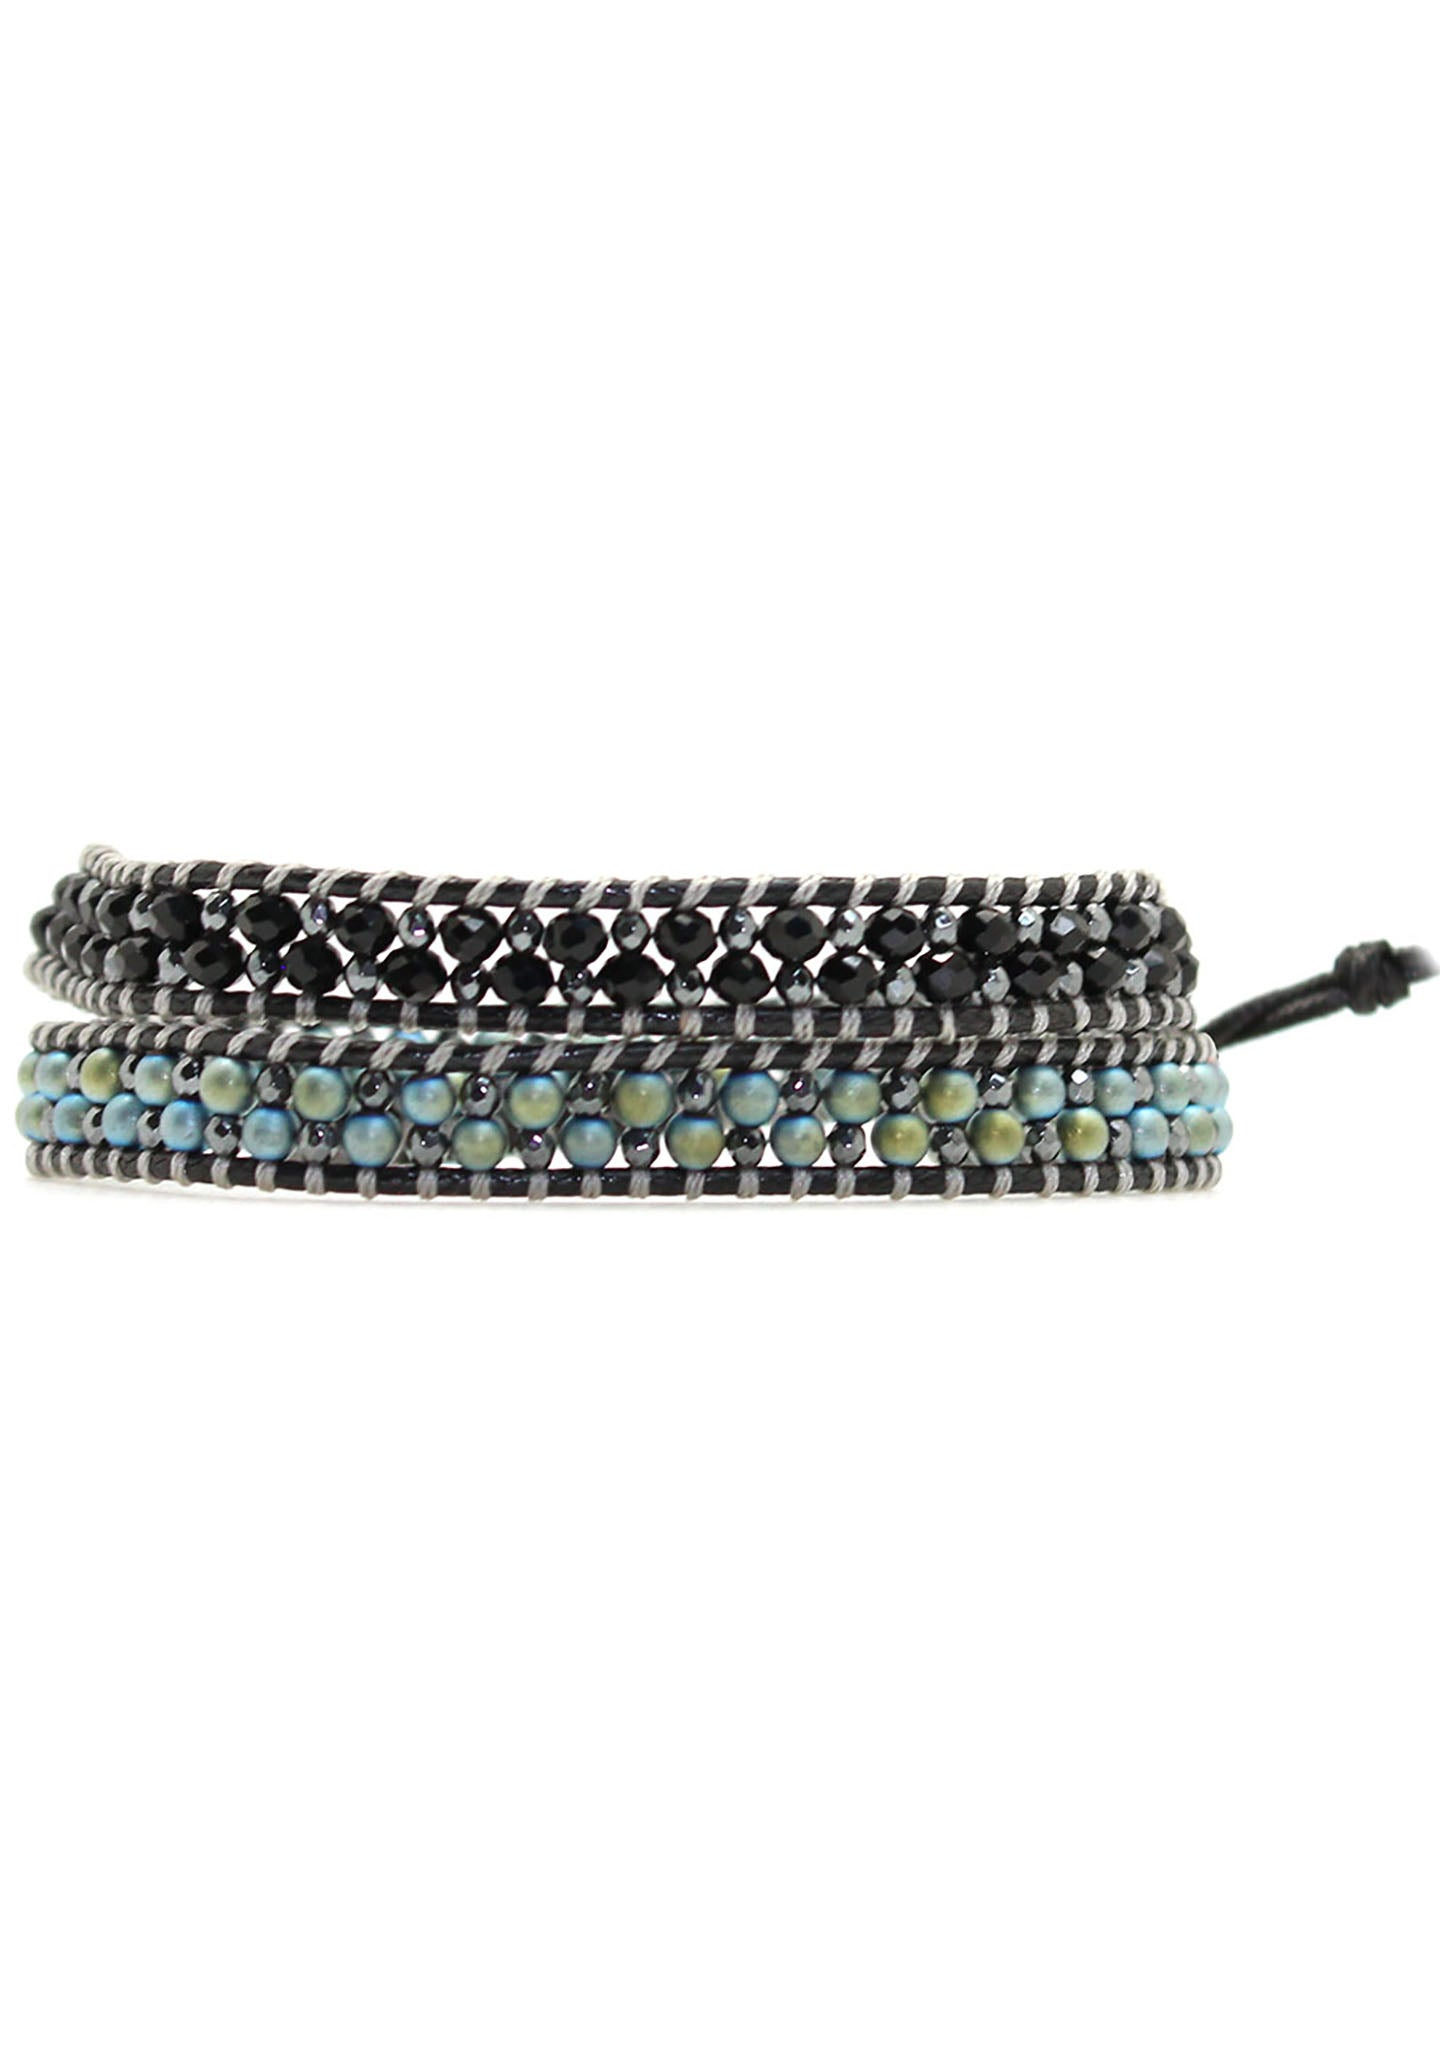 7 LUXE X Katie Soleil Agave Double Wrap Beaded Bracelet